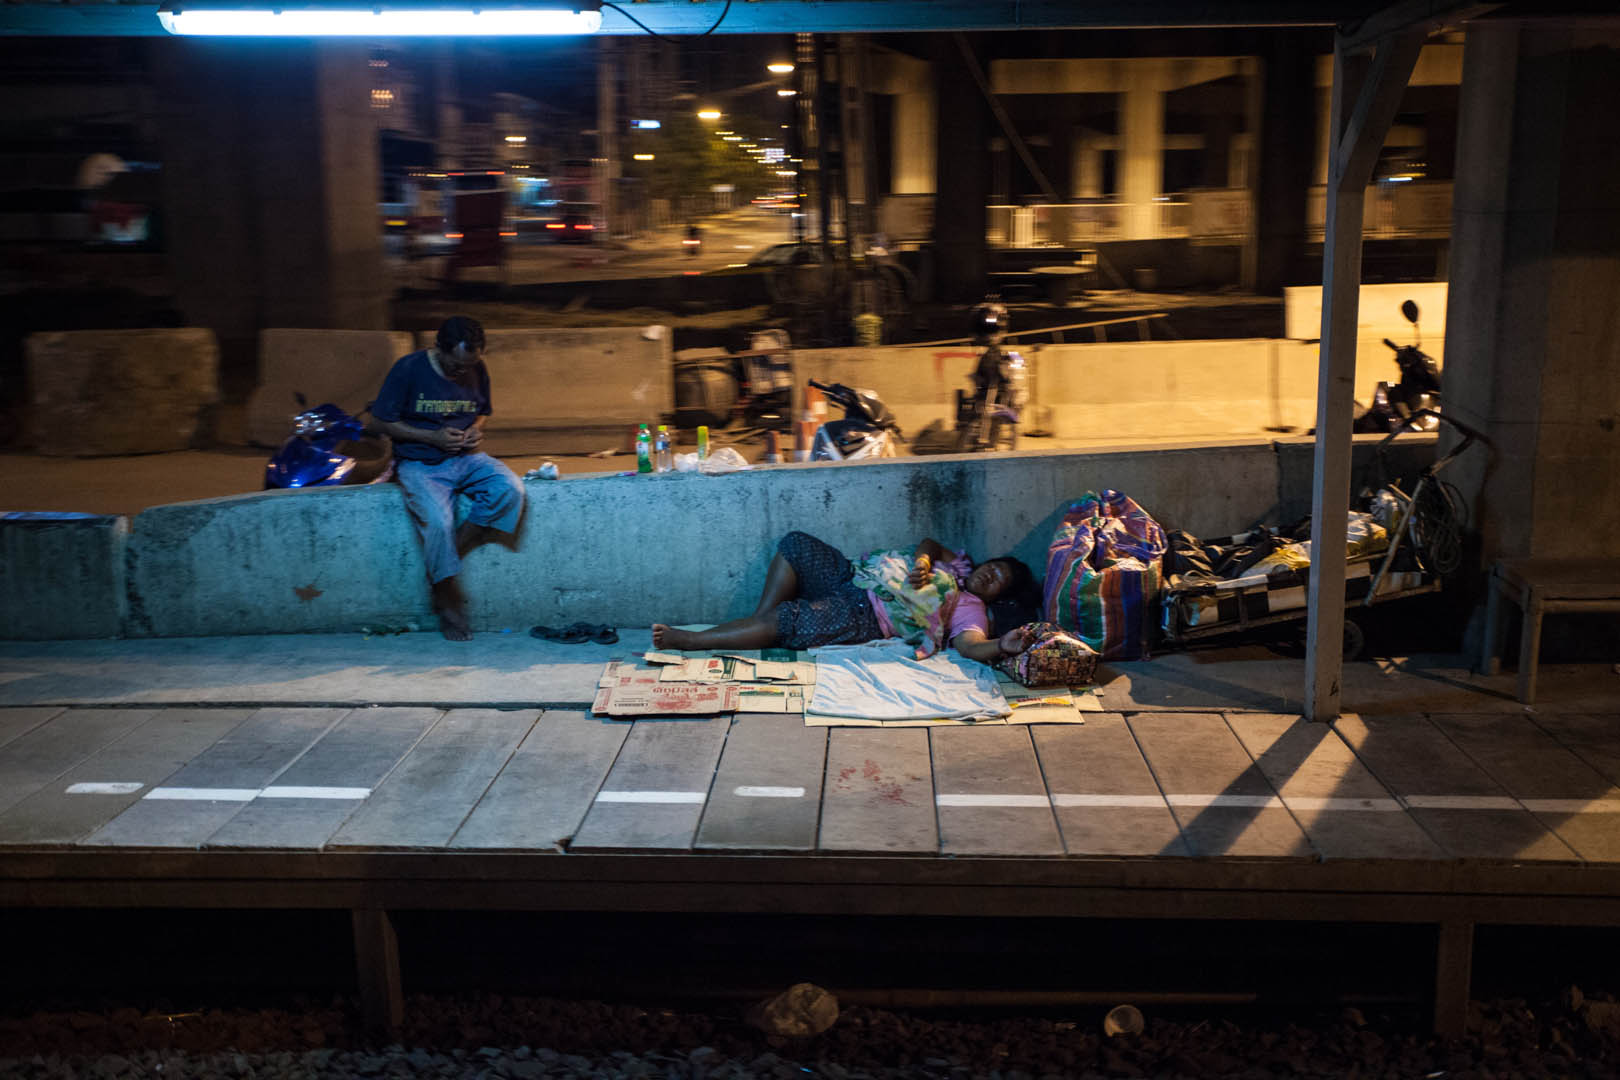 A station in the suburbs of Bangkok. I don't think they are waiting for train...